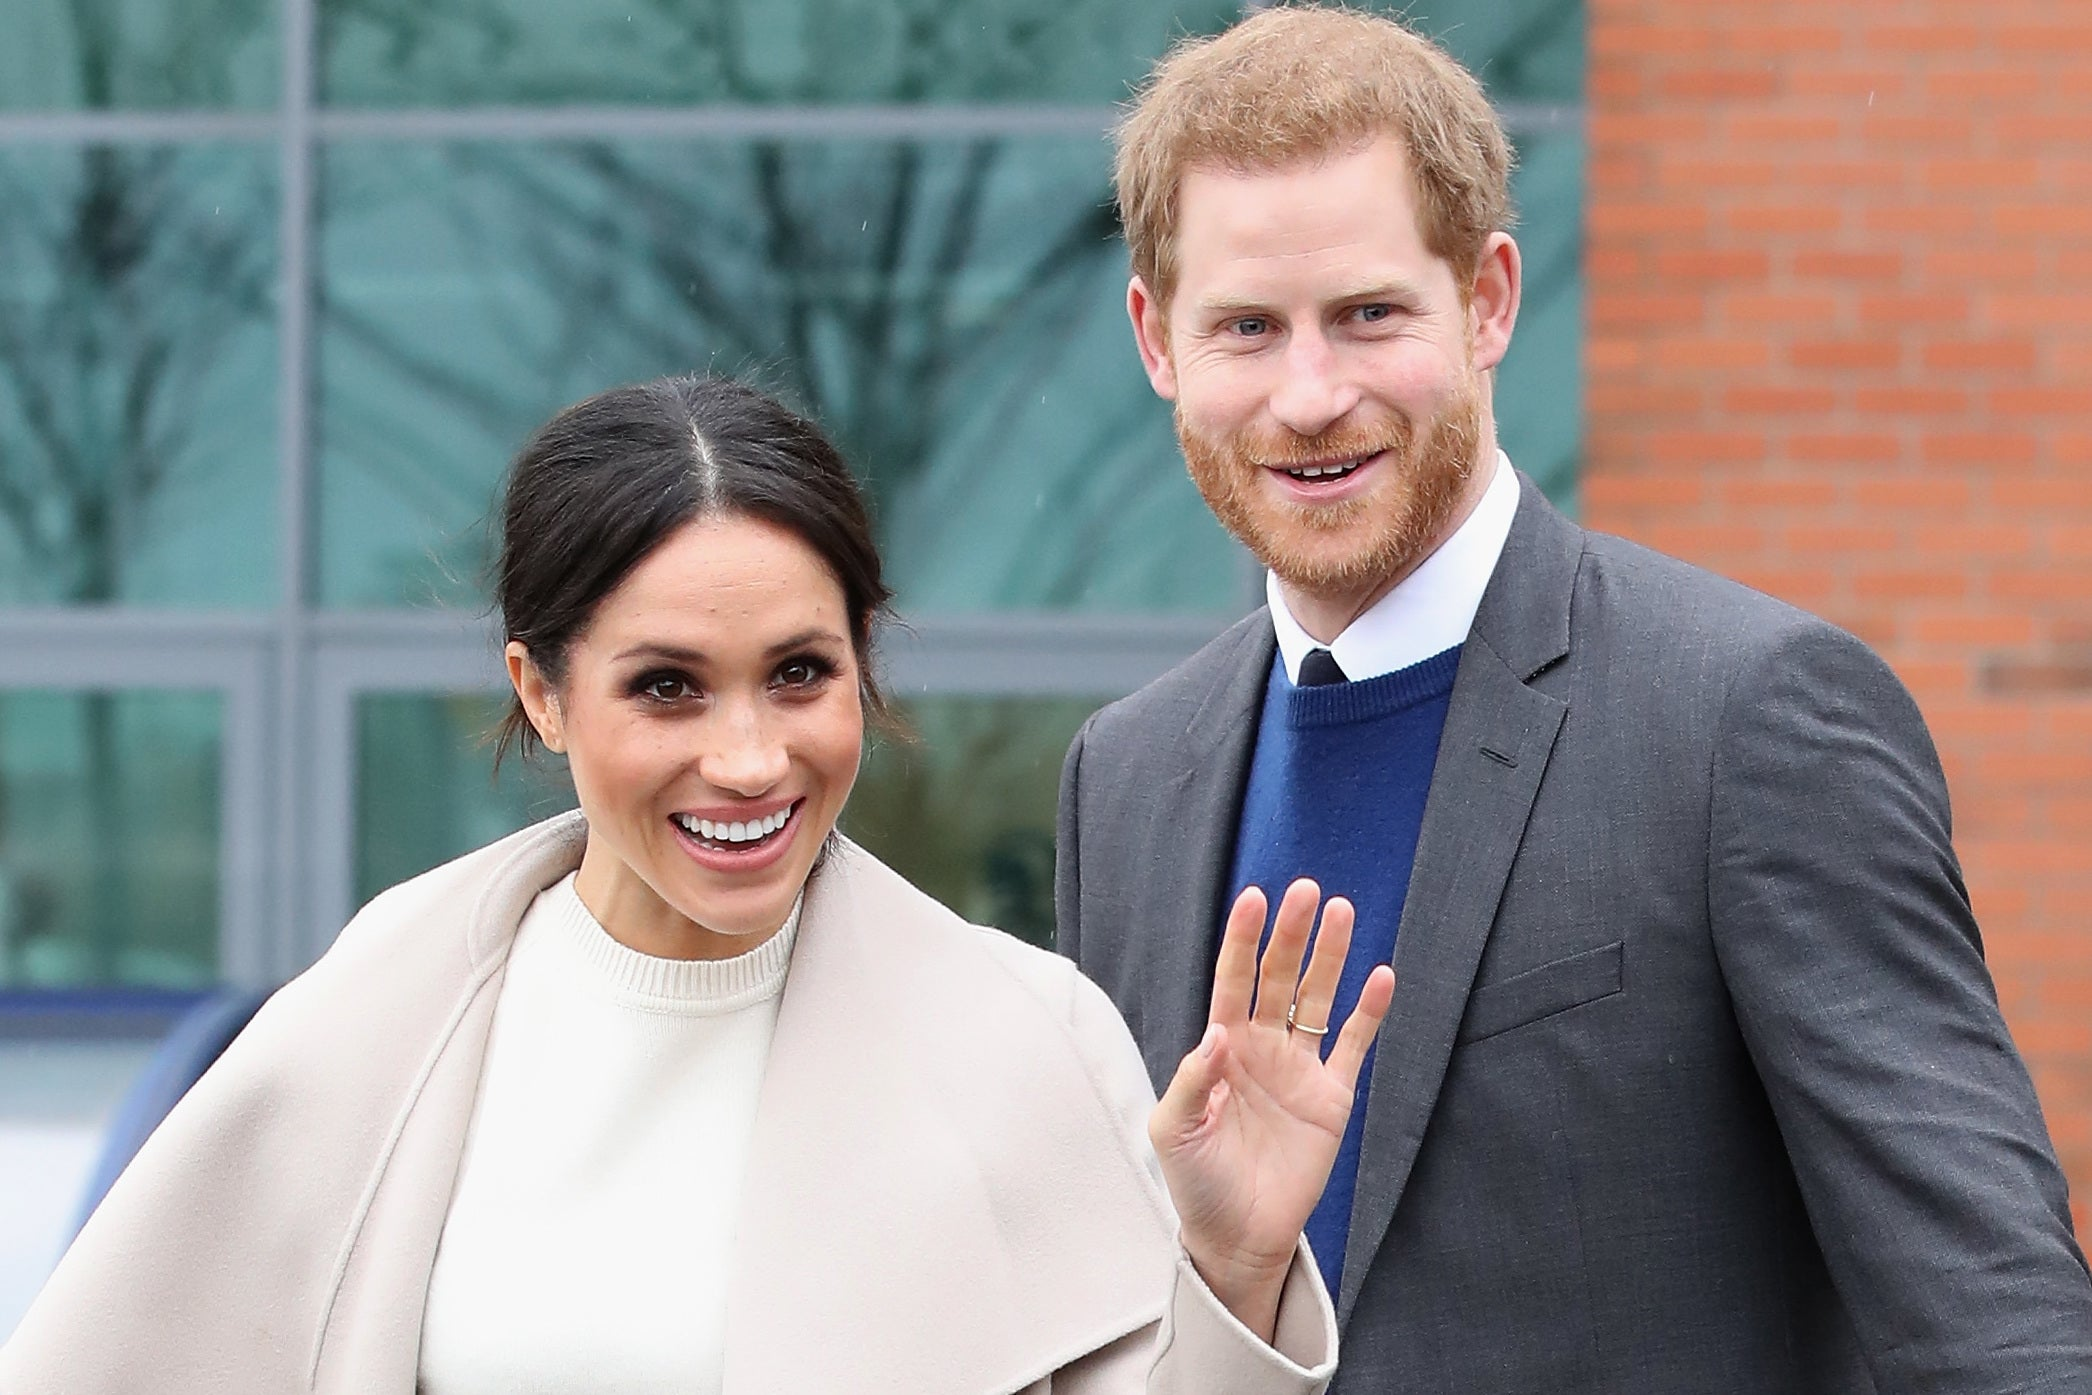 live updates: Latest news on Meghan Markle and Prince Harry's ceremony